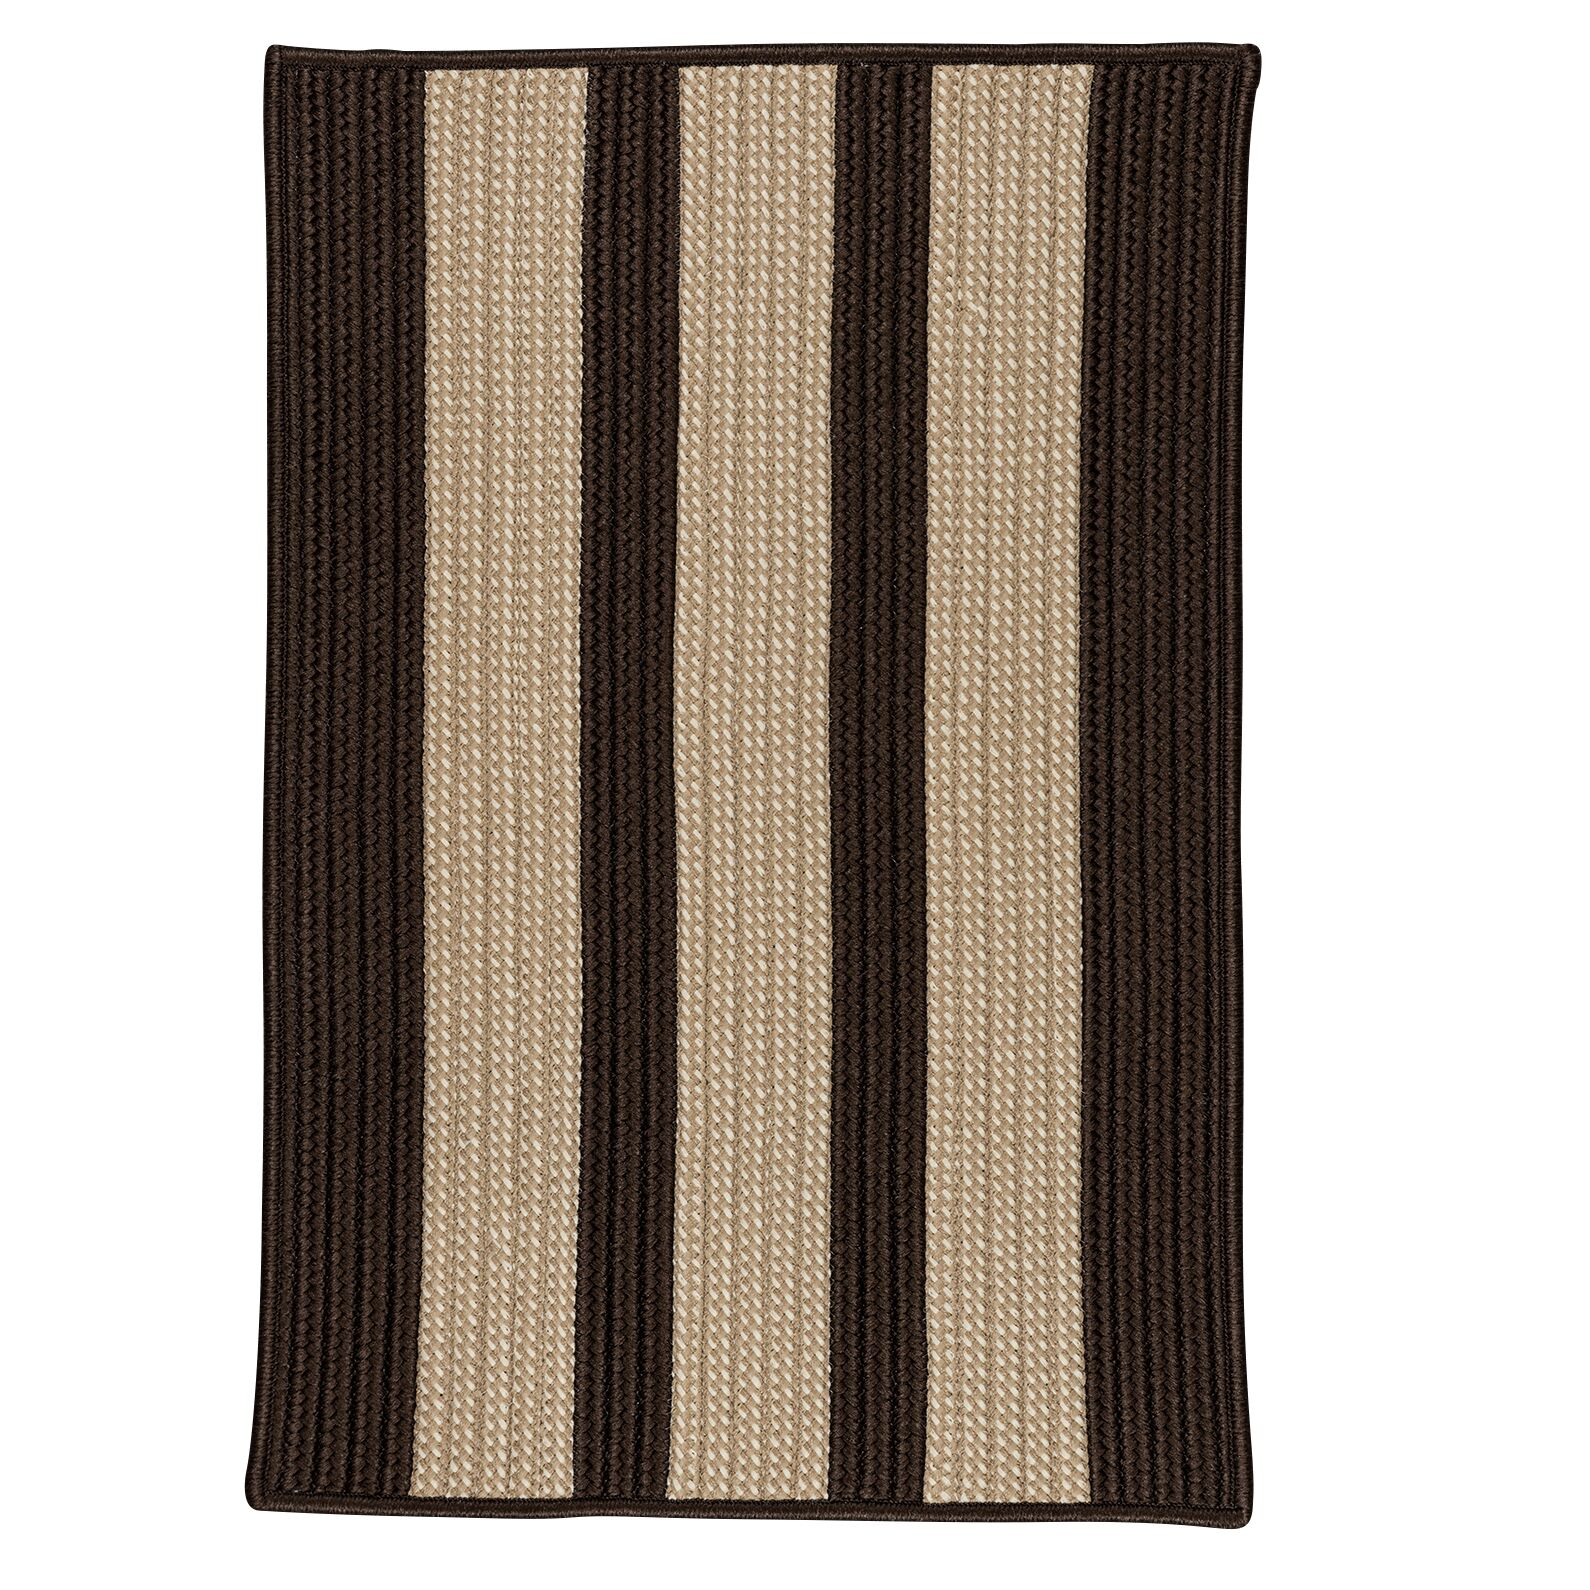 Seal Harbor Brown Indoor/Outdoor Area Rug Rug Size: Square 12'